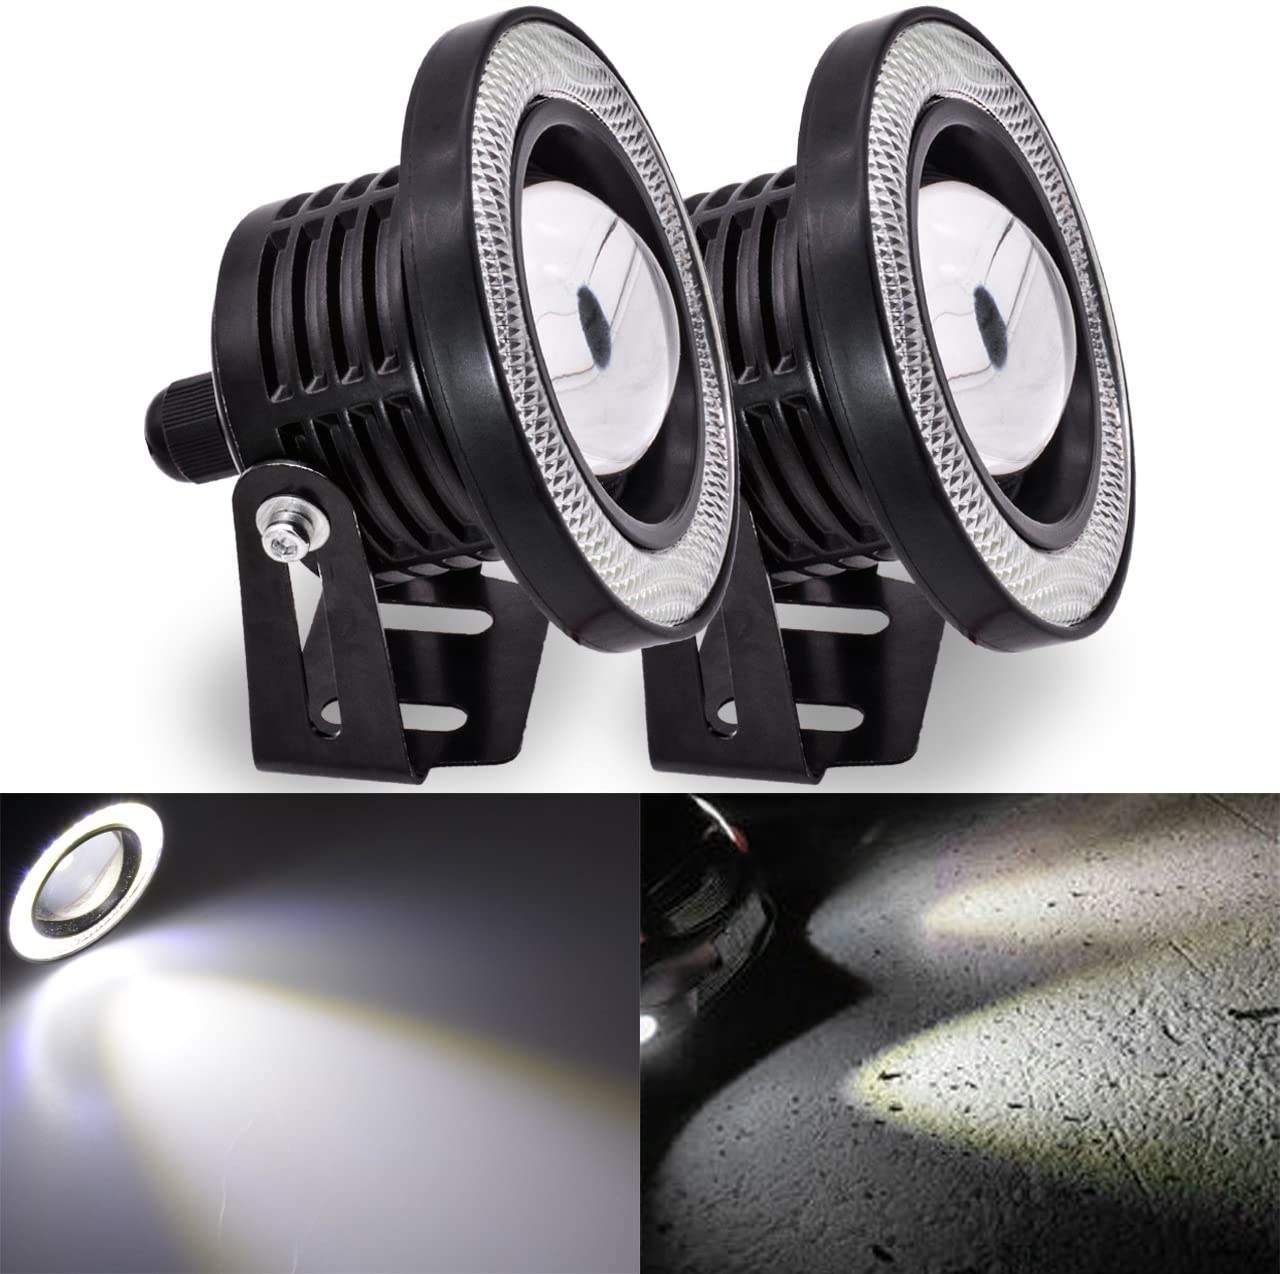 TUINCYN 3.5 Inch LED Fog Light White COB Halo Angel Eye Rings Used for Daytime Running Light DRL Car Driving Lights Projector Unversal RGB LED DC 12V-16V 3200 Lumens (Pack of 2)